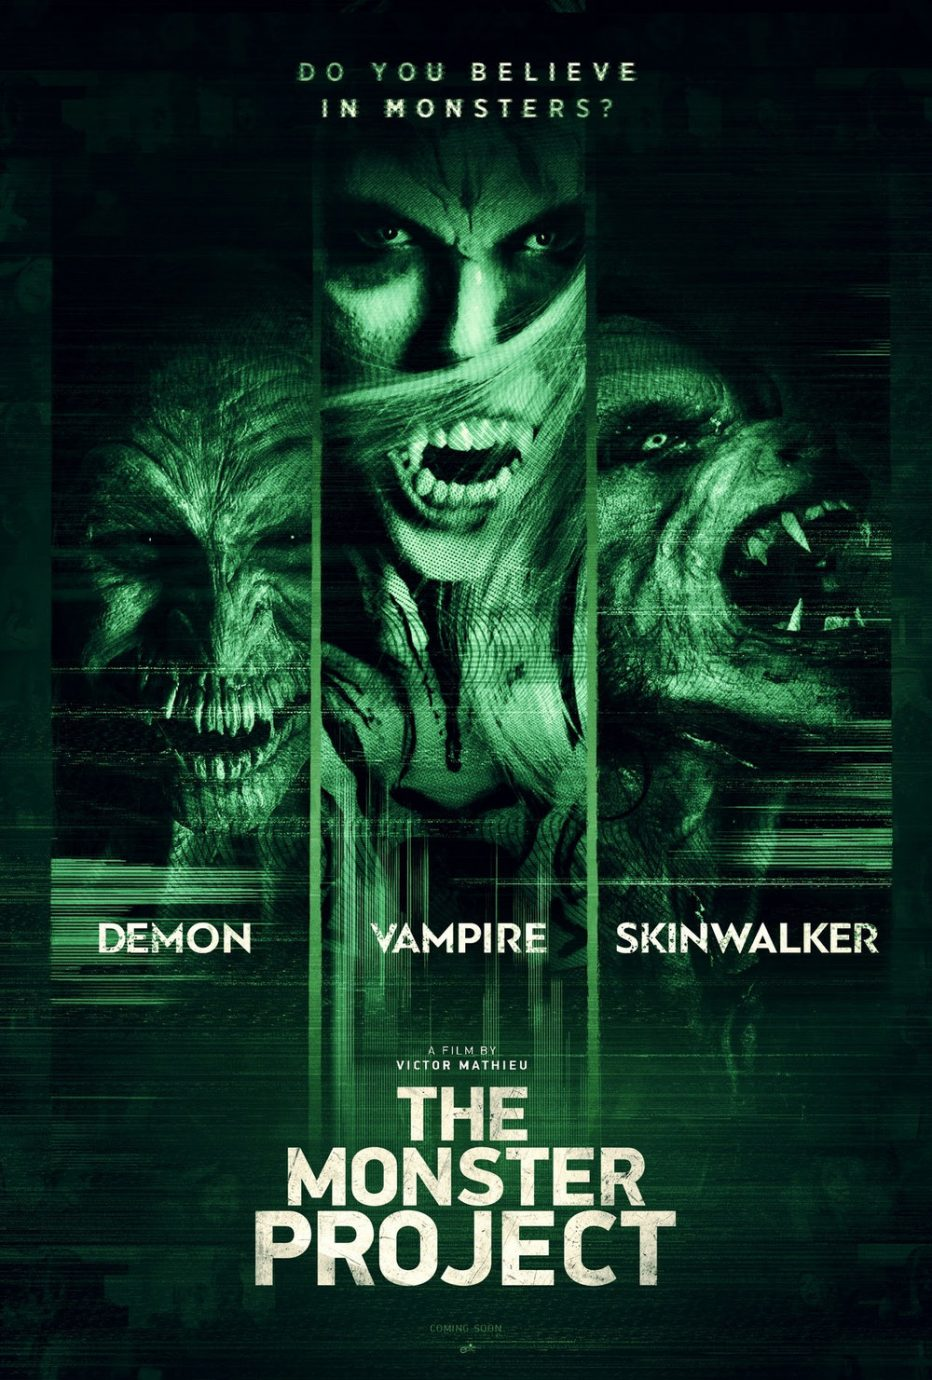 The Monster Project Out on VOD August 18th